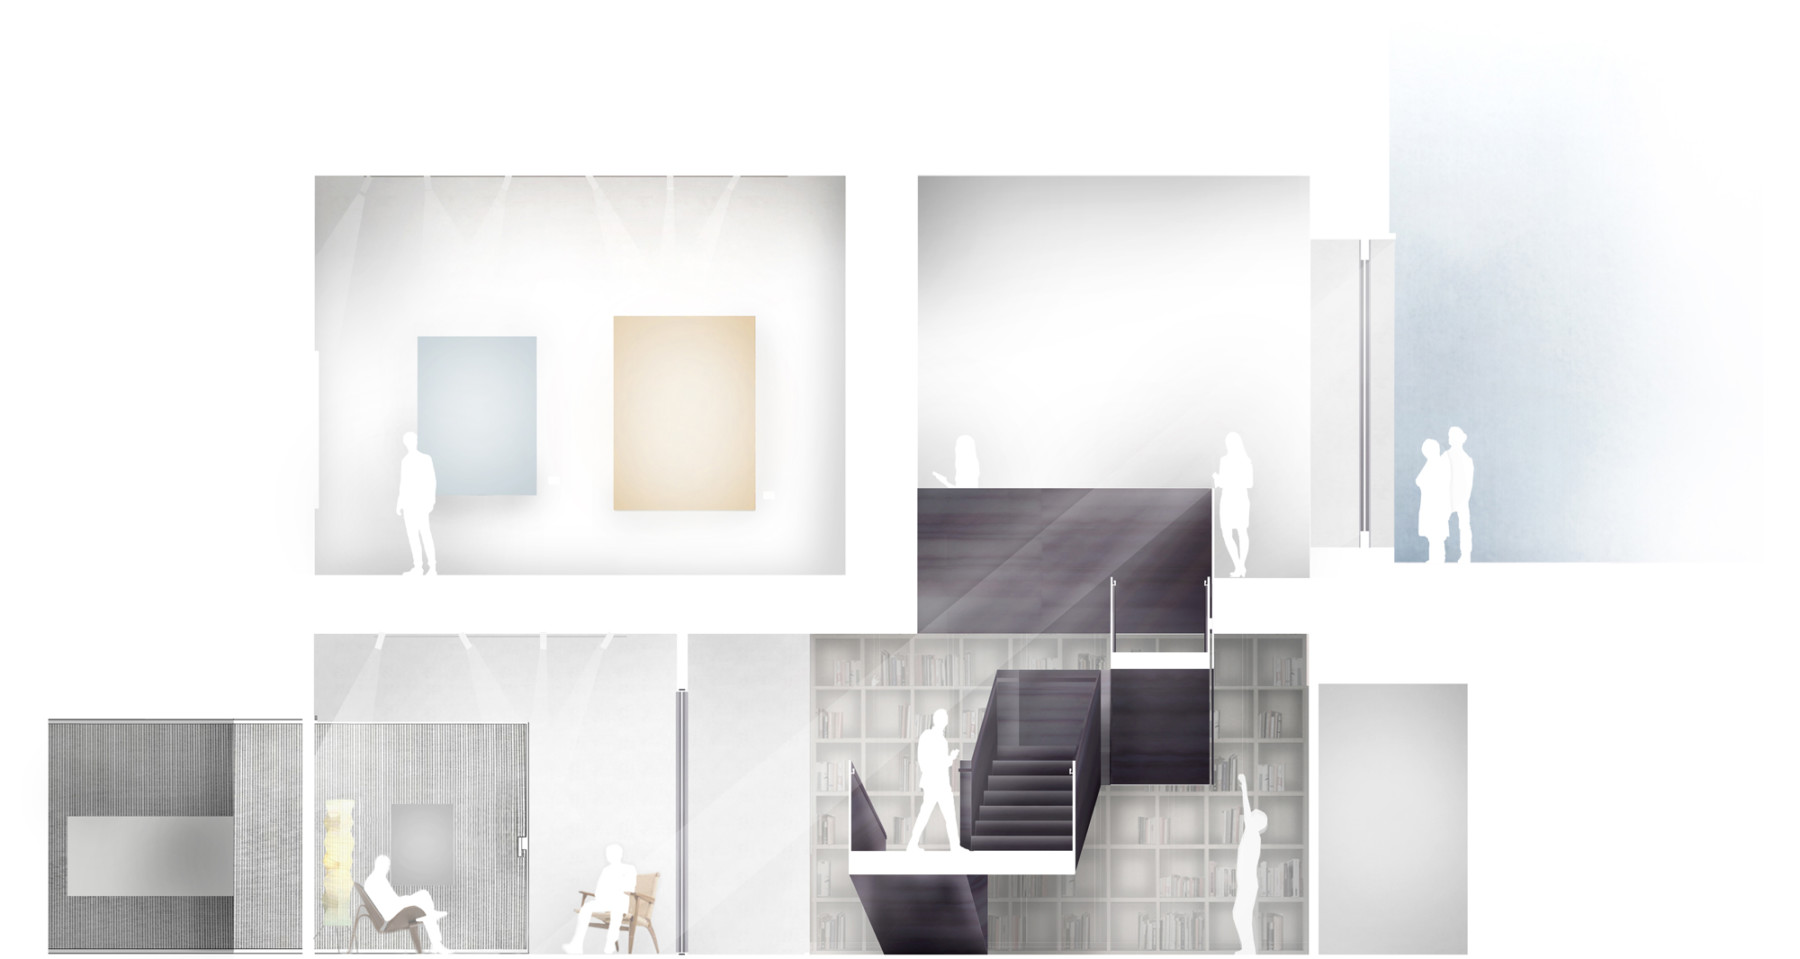 Pace-gallery-hanover-square-jamie-fobert-architects-short-section